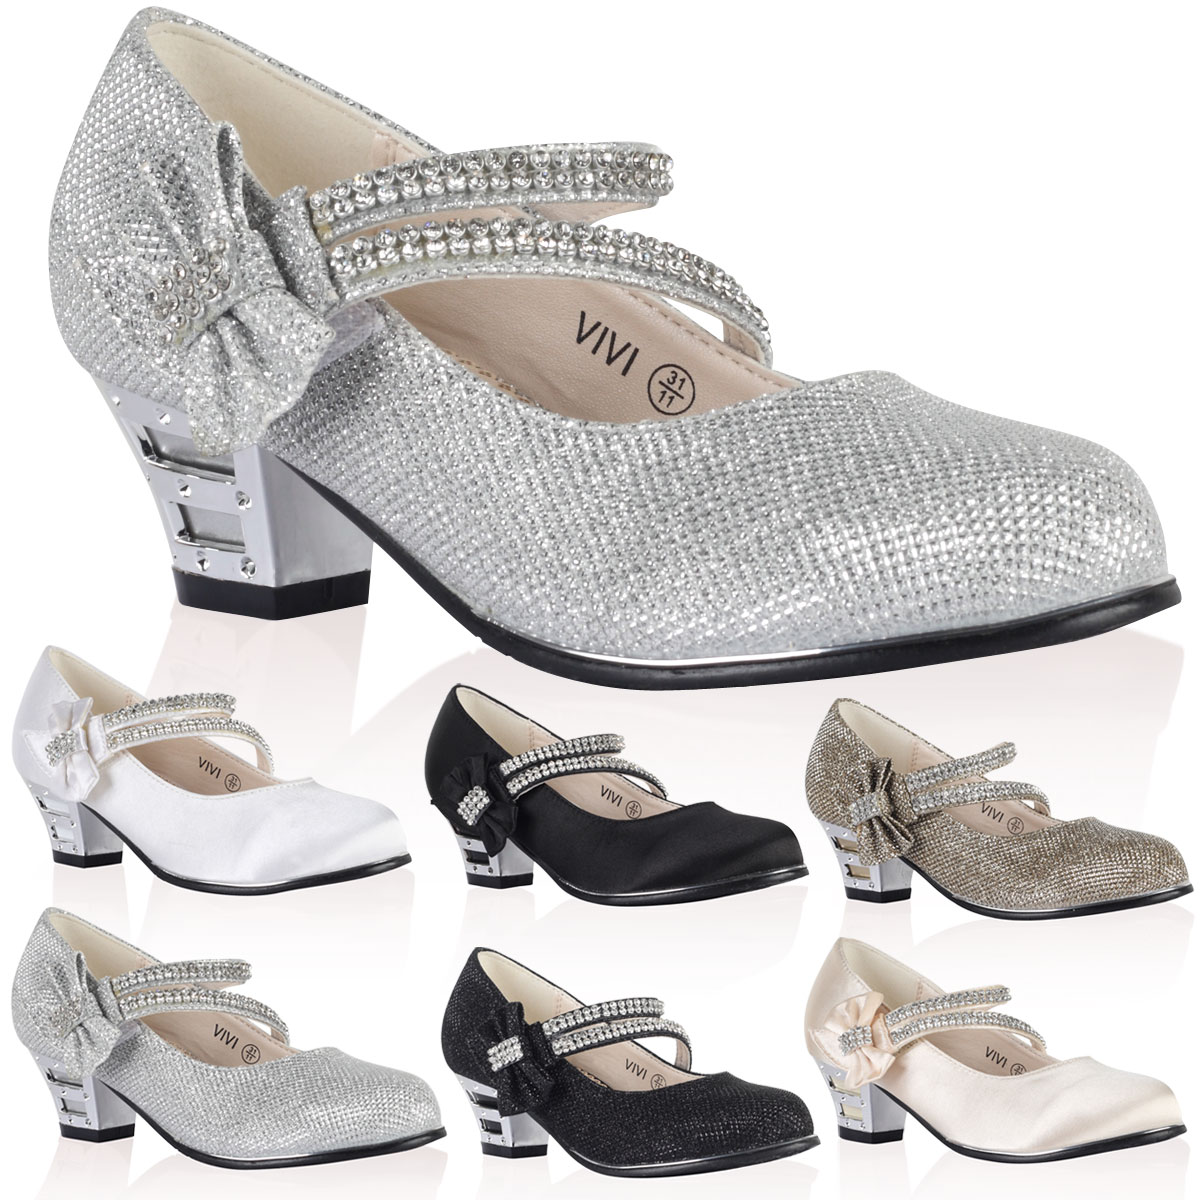 Silver Sparkle Low Heel Shoes - Is Heel